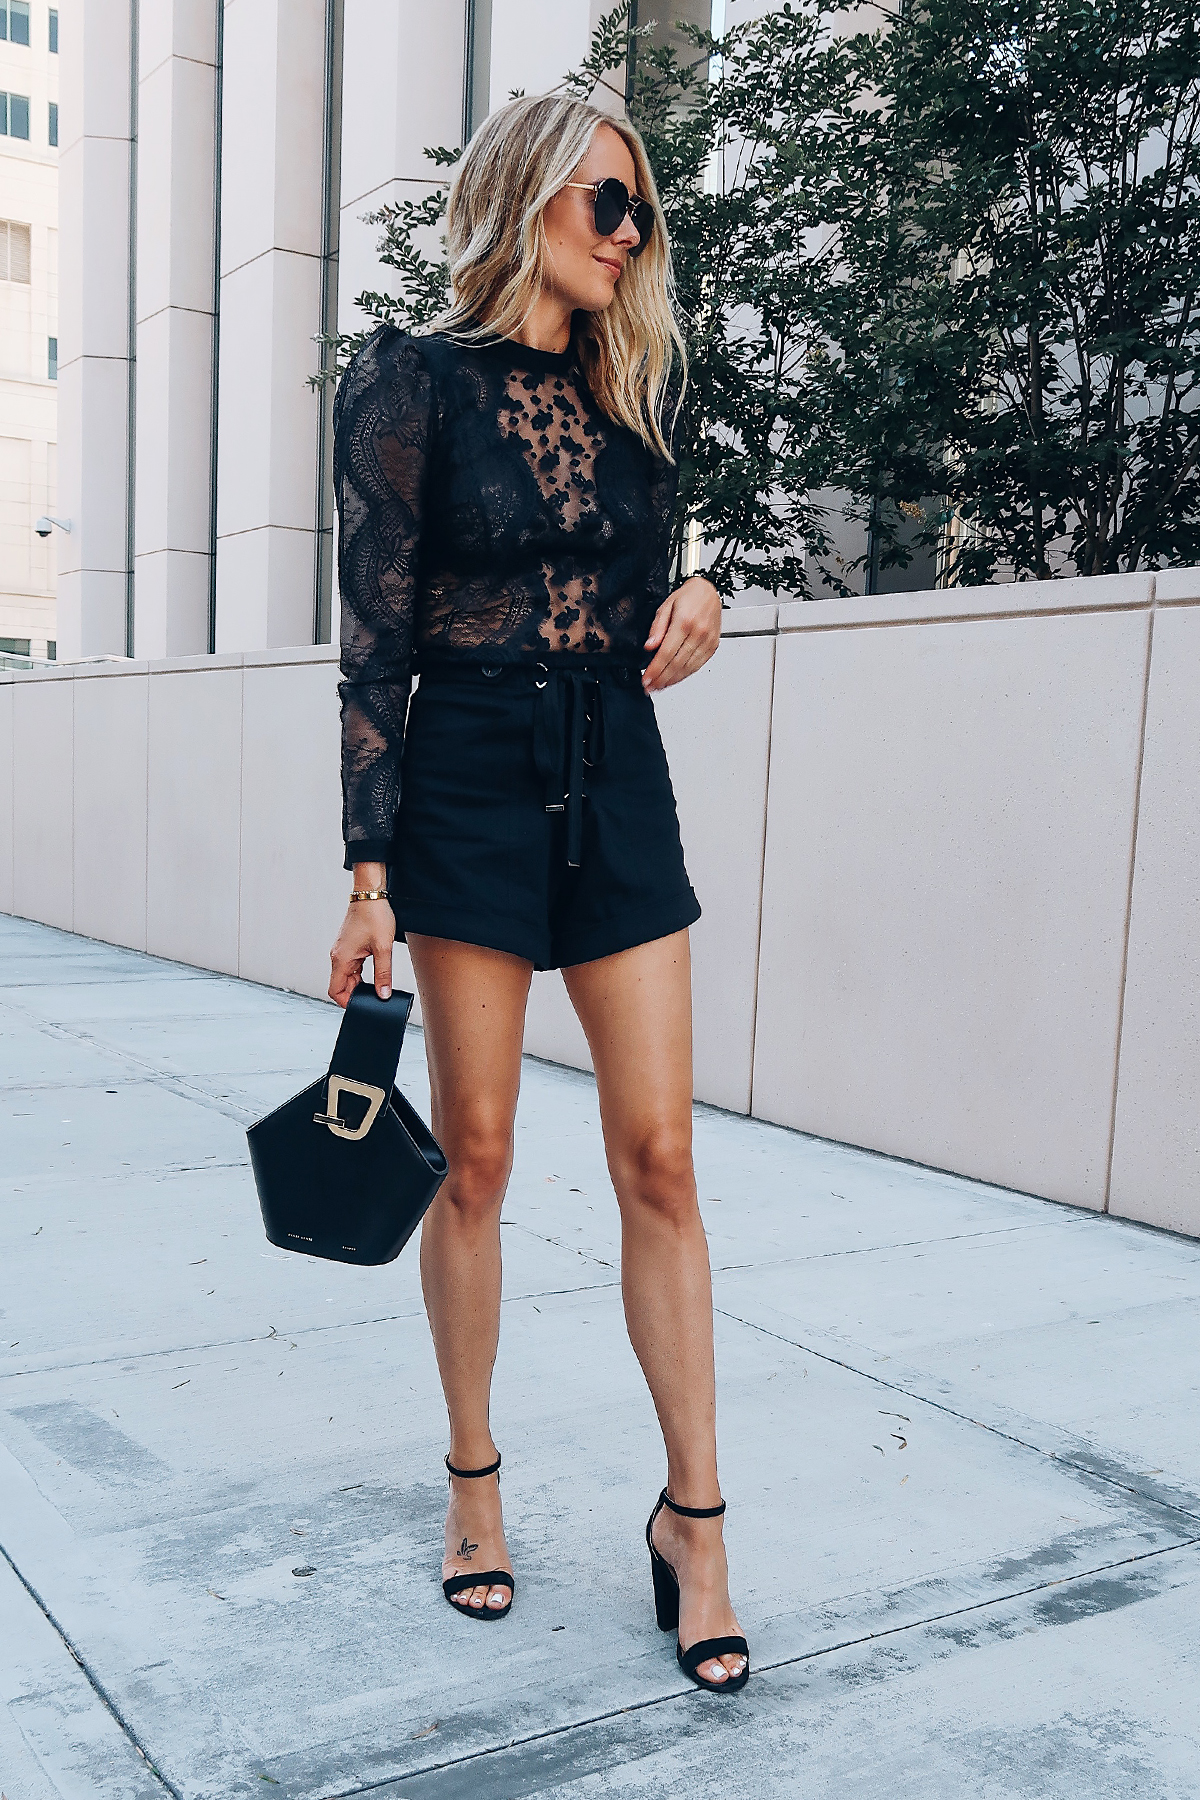 Blonde Woman Wearing Self Portrait Black Lace Top Self Portrait Black Lace Up Shorts Danse Lente Black Bucket Bag Black Ankle Strap Heels Aviator Sunglasses Fashion Jackson San Diego Blogger Fashion Blogger Street Style